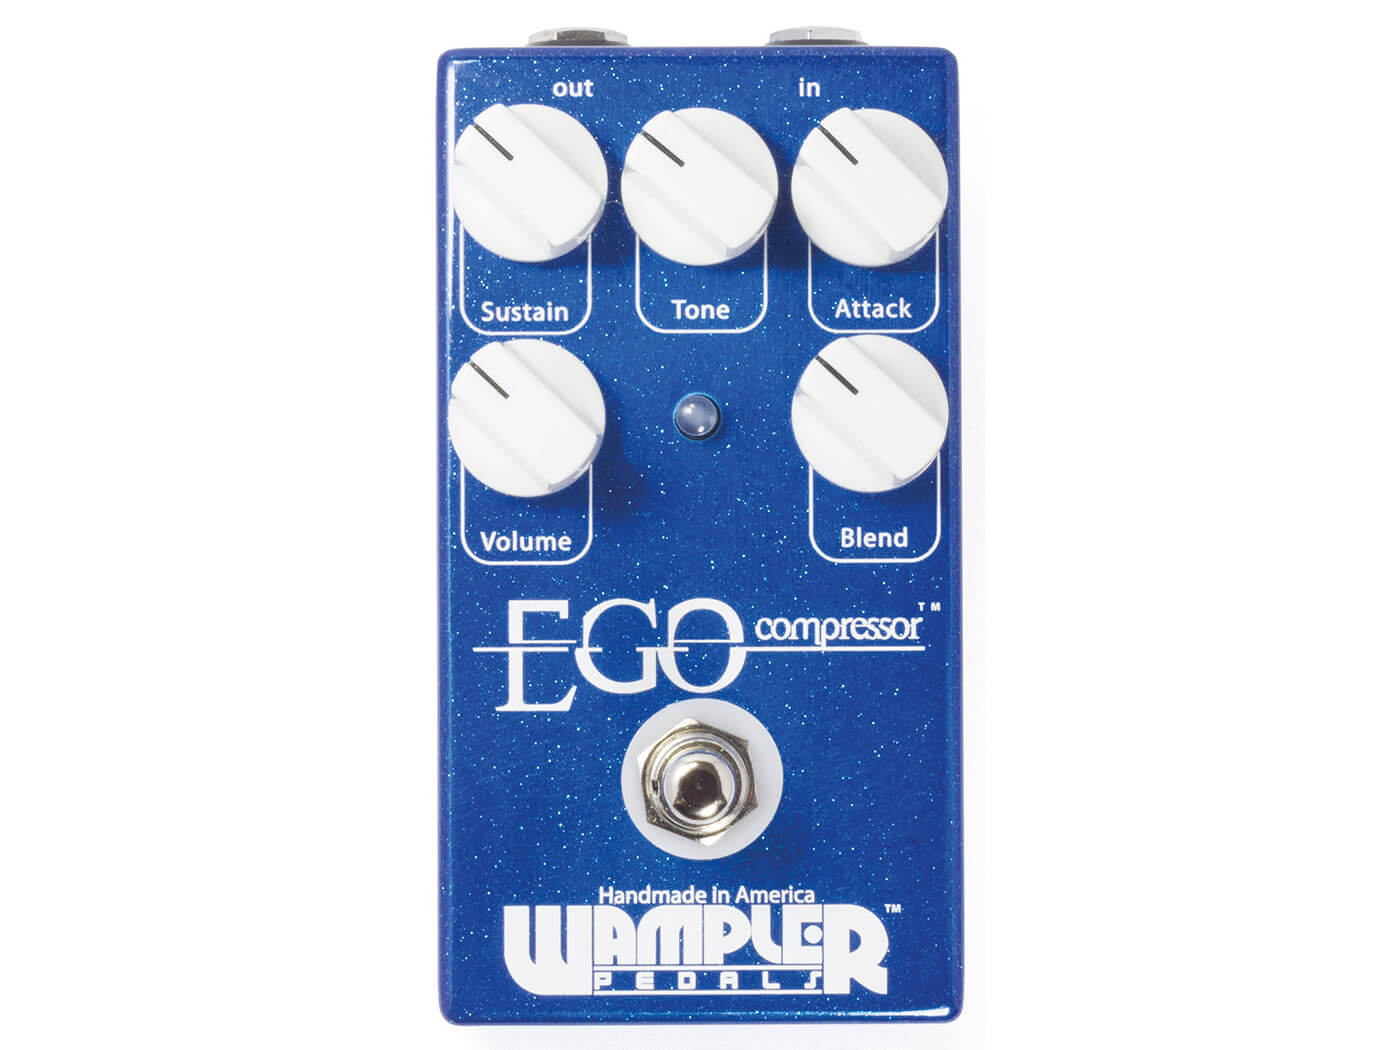 Four best compressor pedals for electric guitars